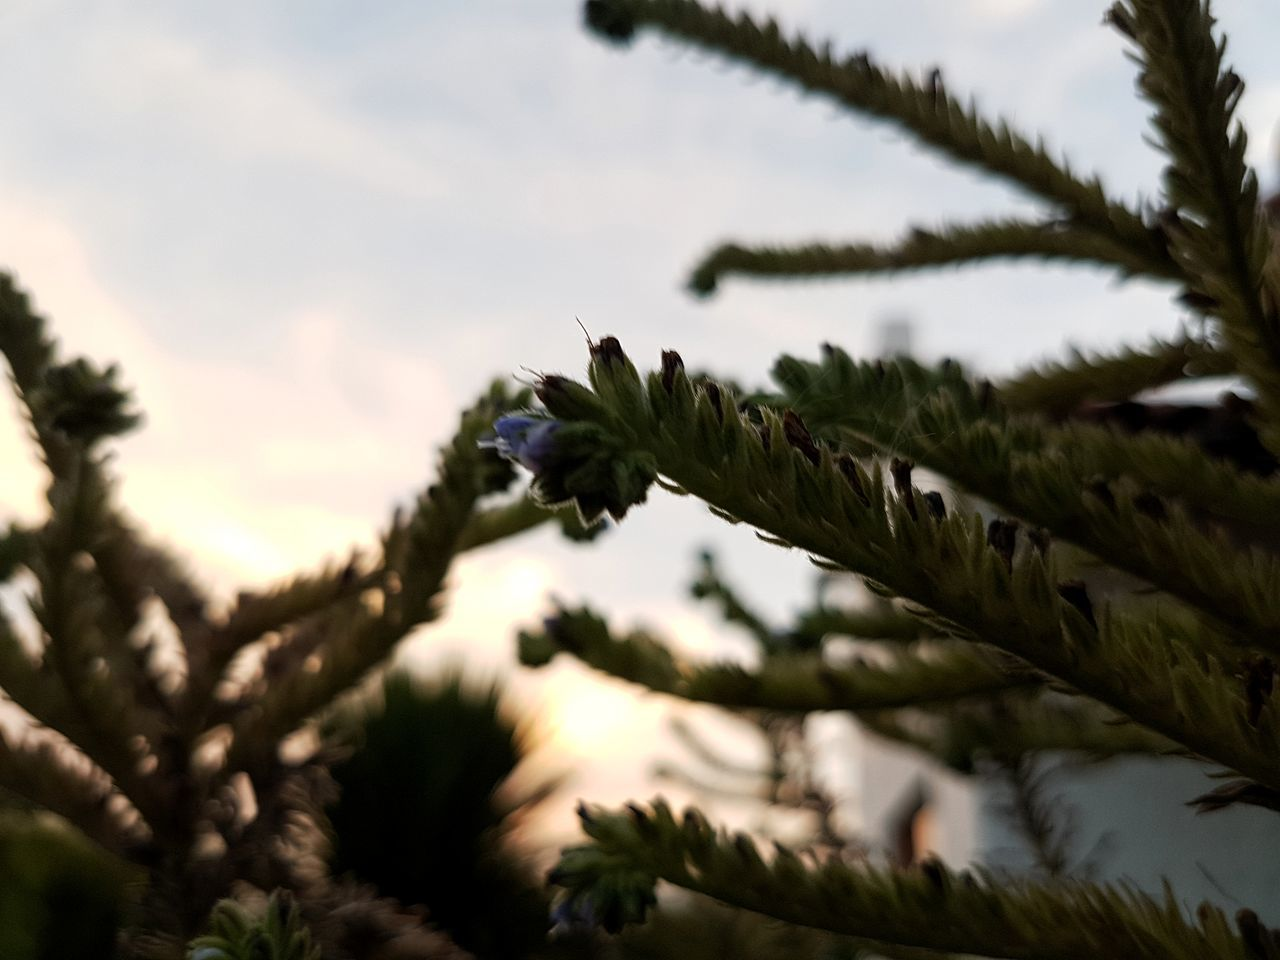 [TFC] Growth Plant Nature Tree Flower Beauty In Nature Branch Needle - Plant Part Outdoors Cloud - Sky Pine Cone No People Sky Day Cactus Garden Lifestyles Colors Red Inspirations Scenics Sunset Sunlight Freshness Contrast